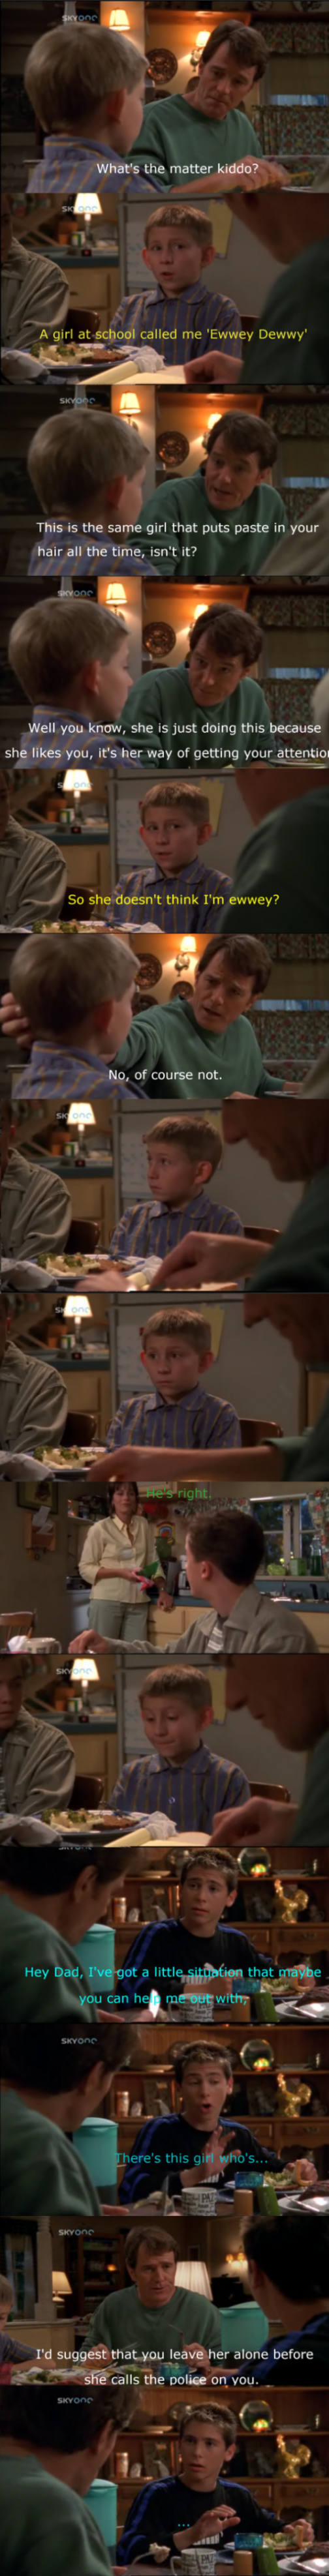 A different Malcolm in the middle scene that I enjoyed